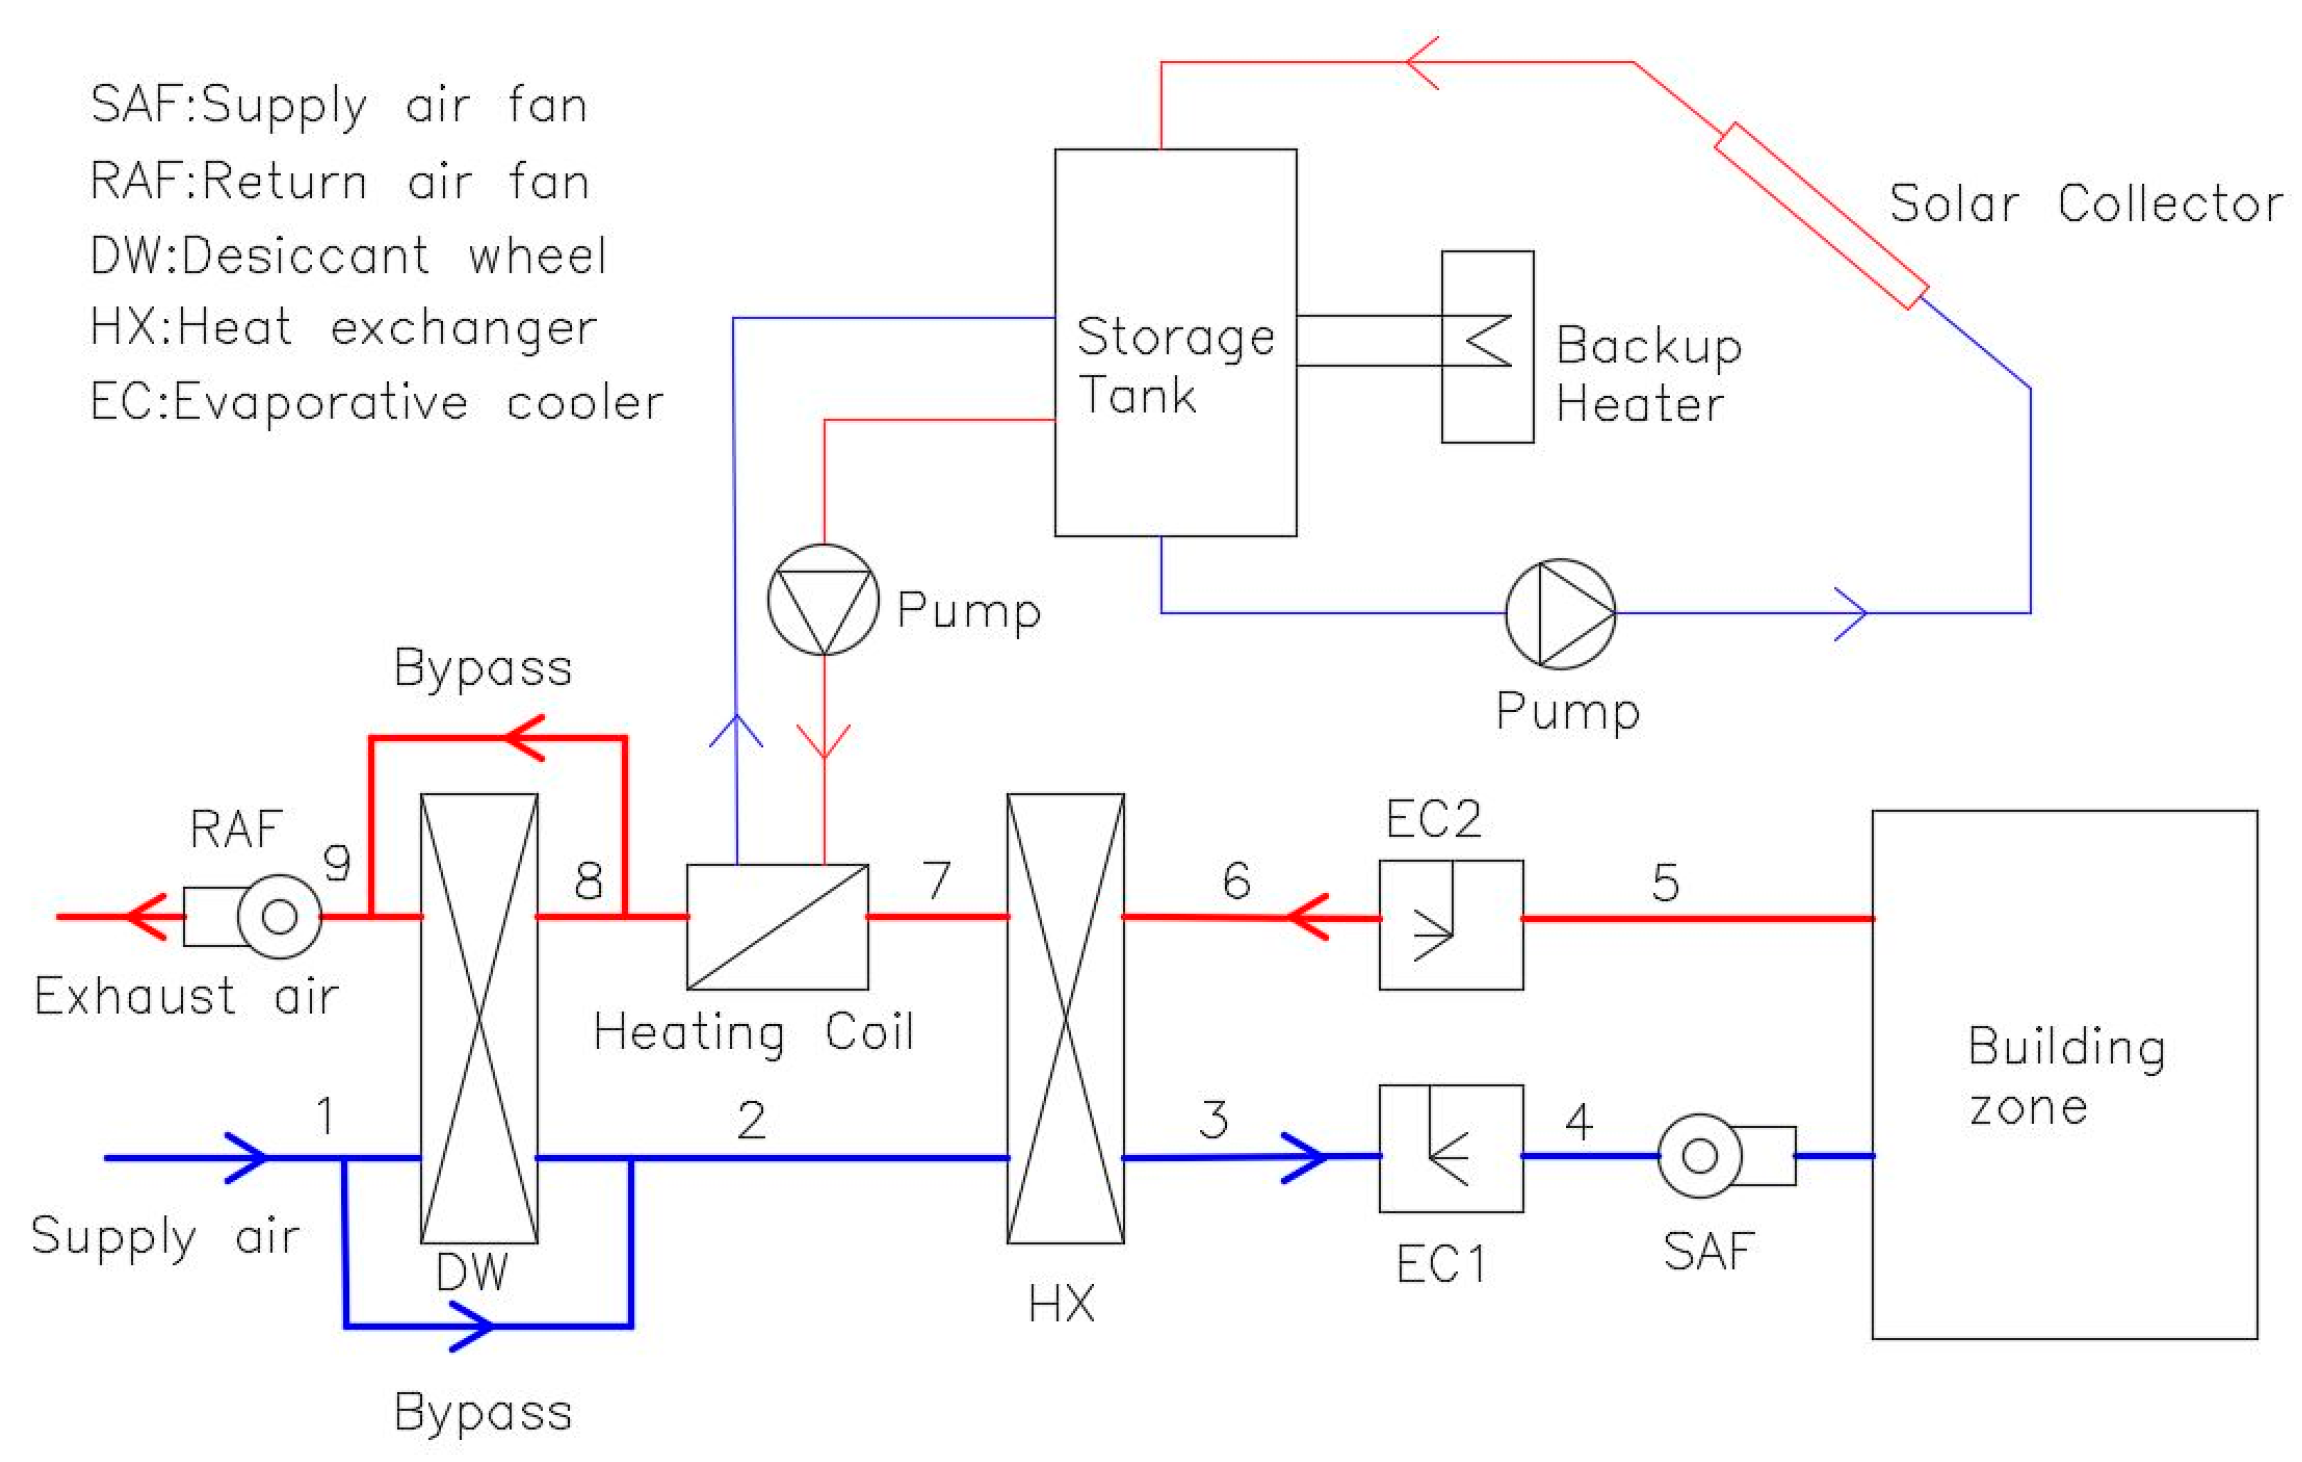 vav board diagram with Htm on Hurricane Heater Narrowboat Kit furthermore 2 Stage Furnace Thermostat Wiring as well Vav Wiring Diagram moreover Vav Fan Motor additionally Ac Duct Diagram.